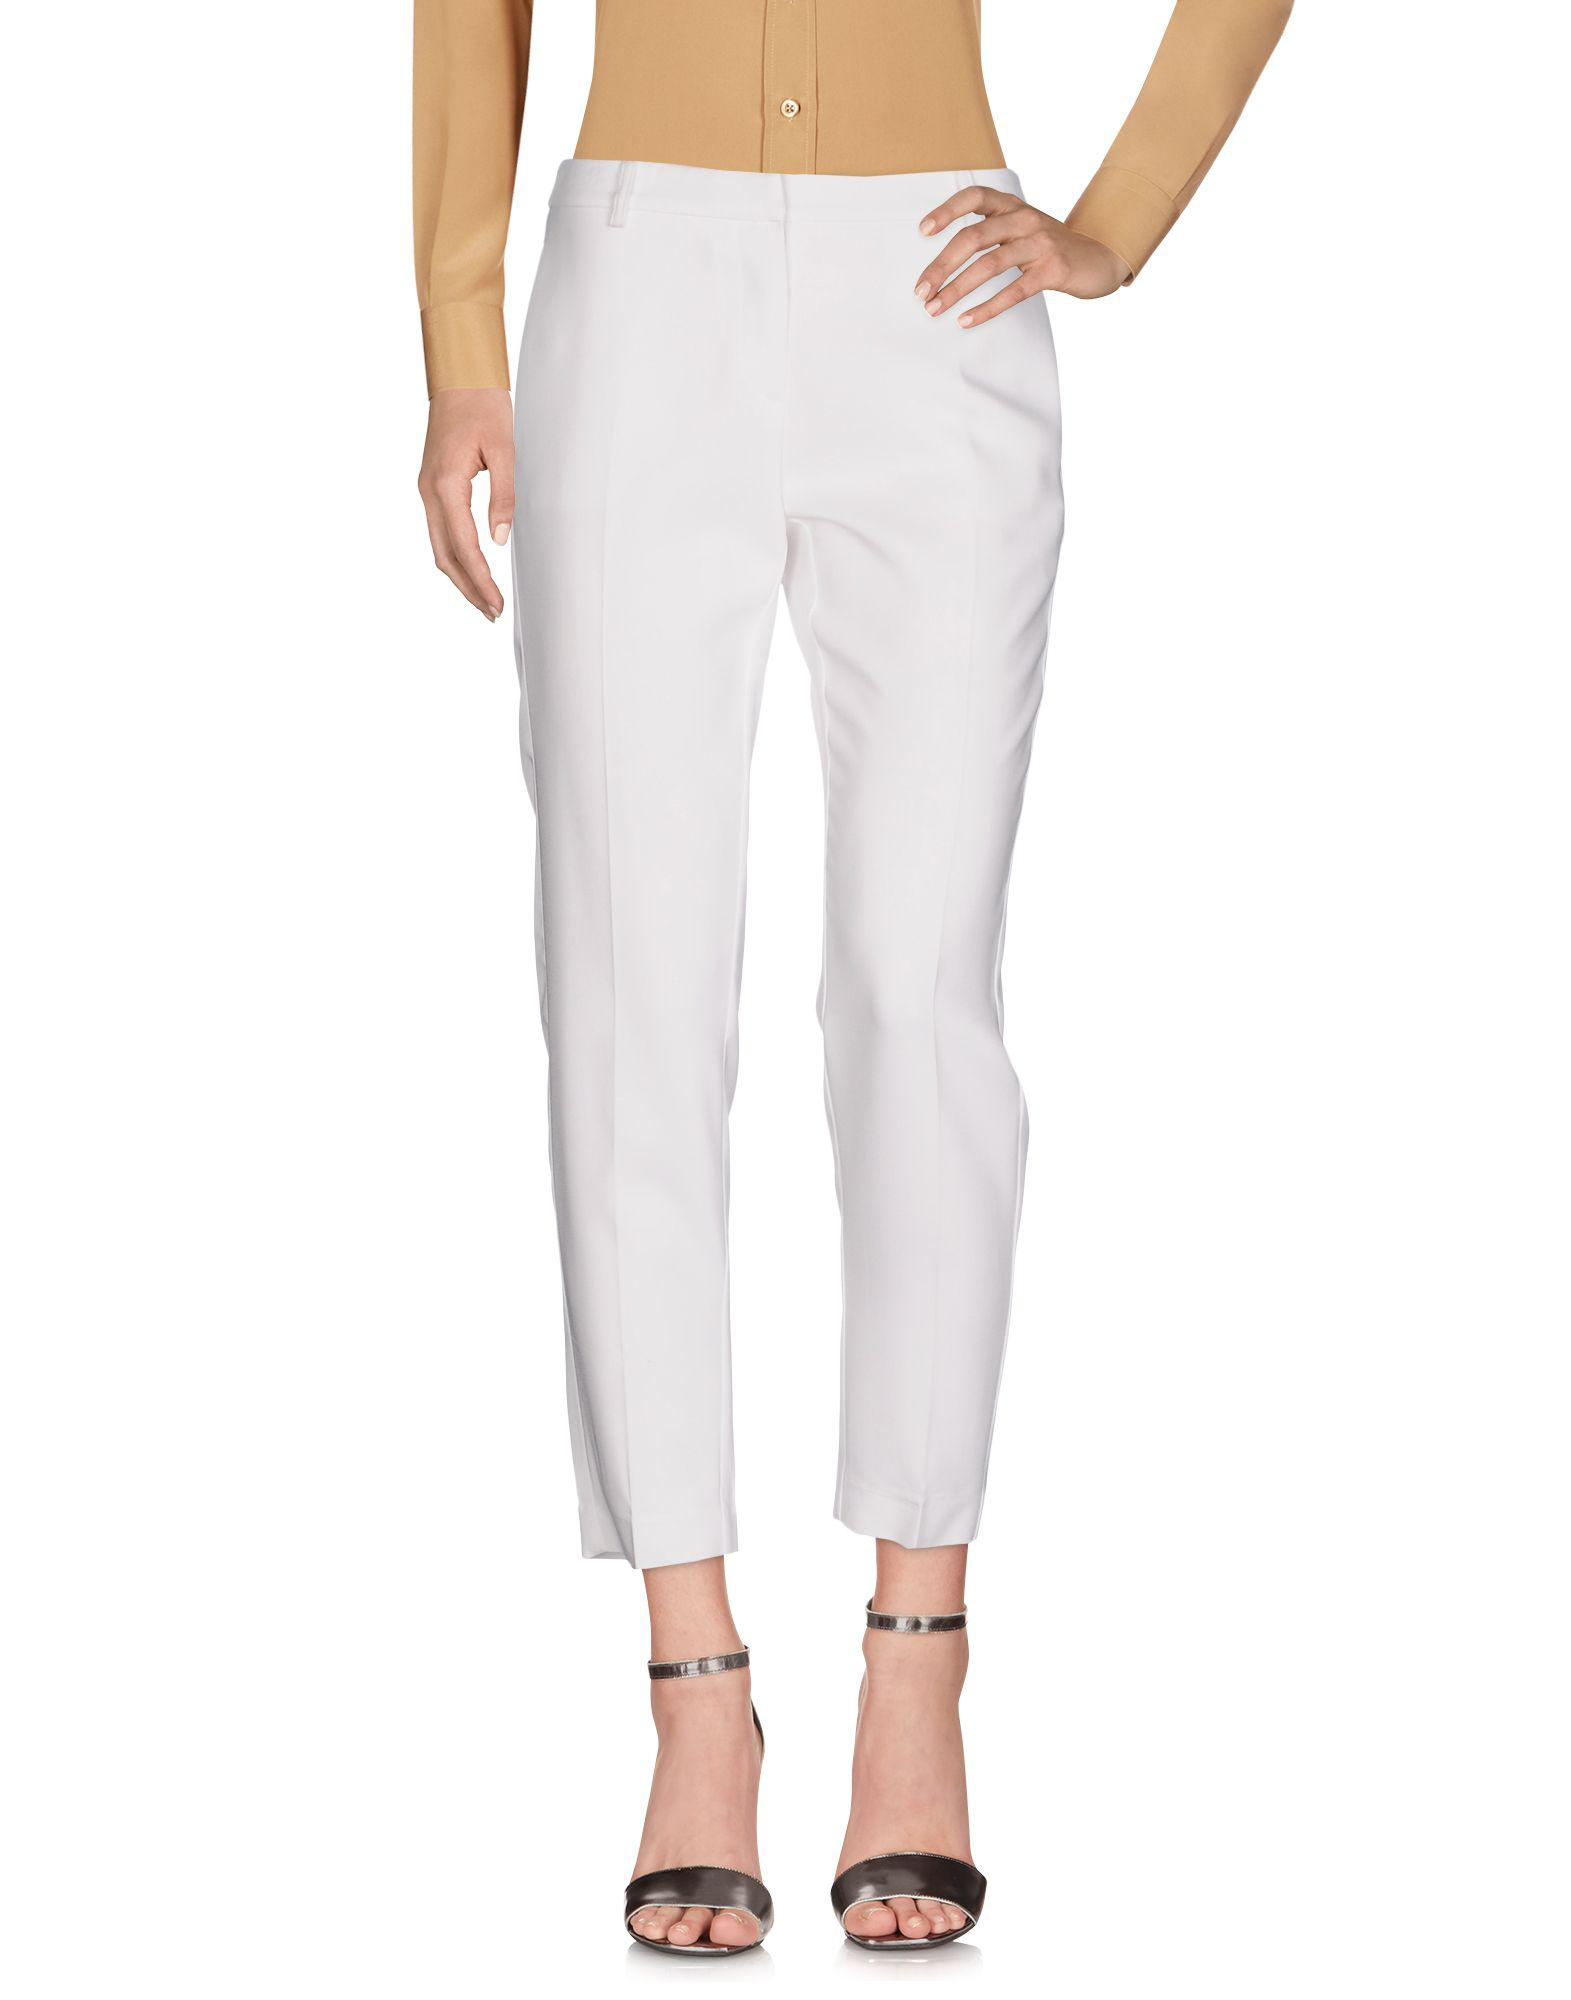 Discount With Mastercard TROUSERS - Casual trousers Concept 100% Guaranteed For Sale Websites Cheap Price Clearance Cheap Hot Sale For Sale 3SFWvP